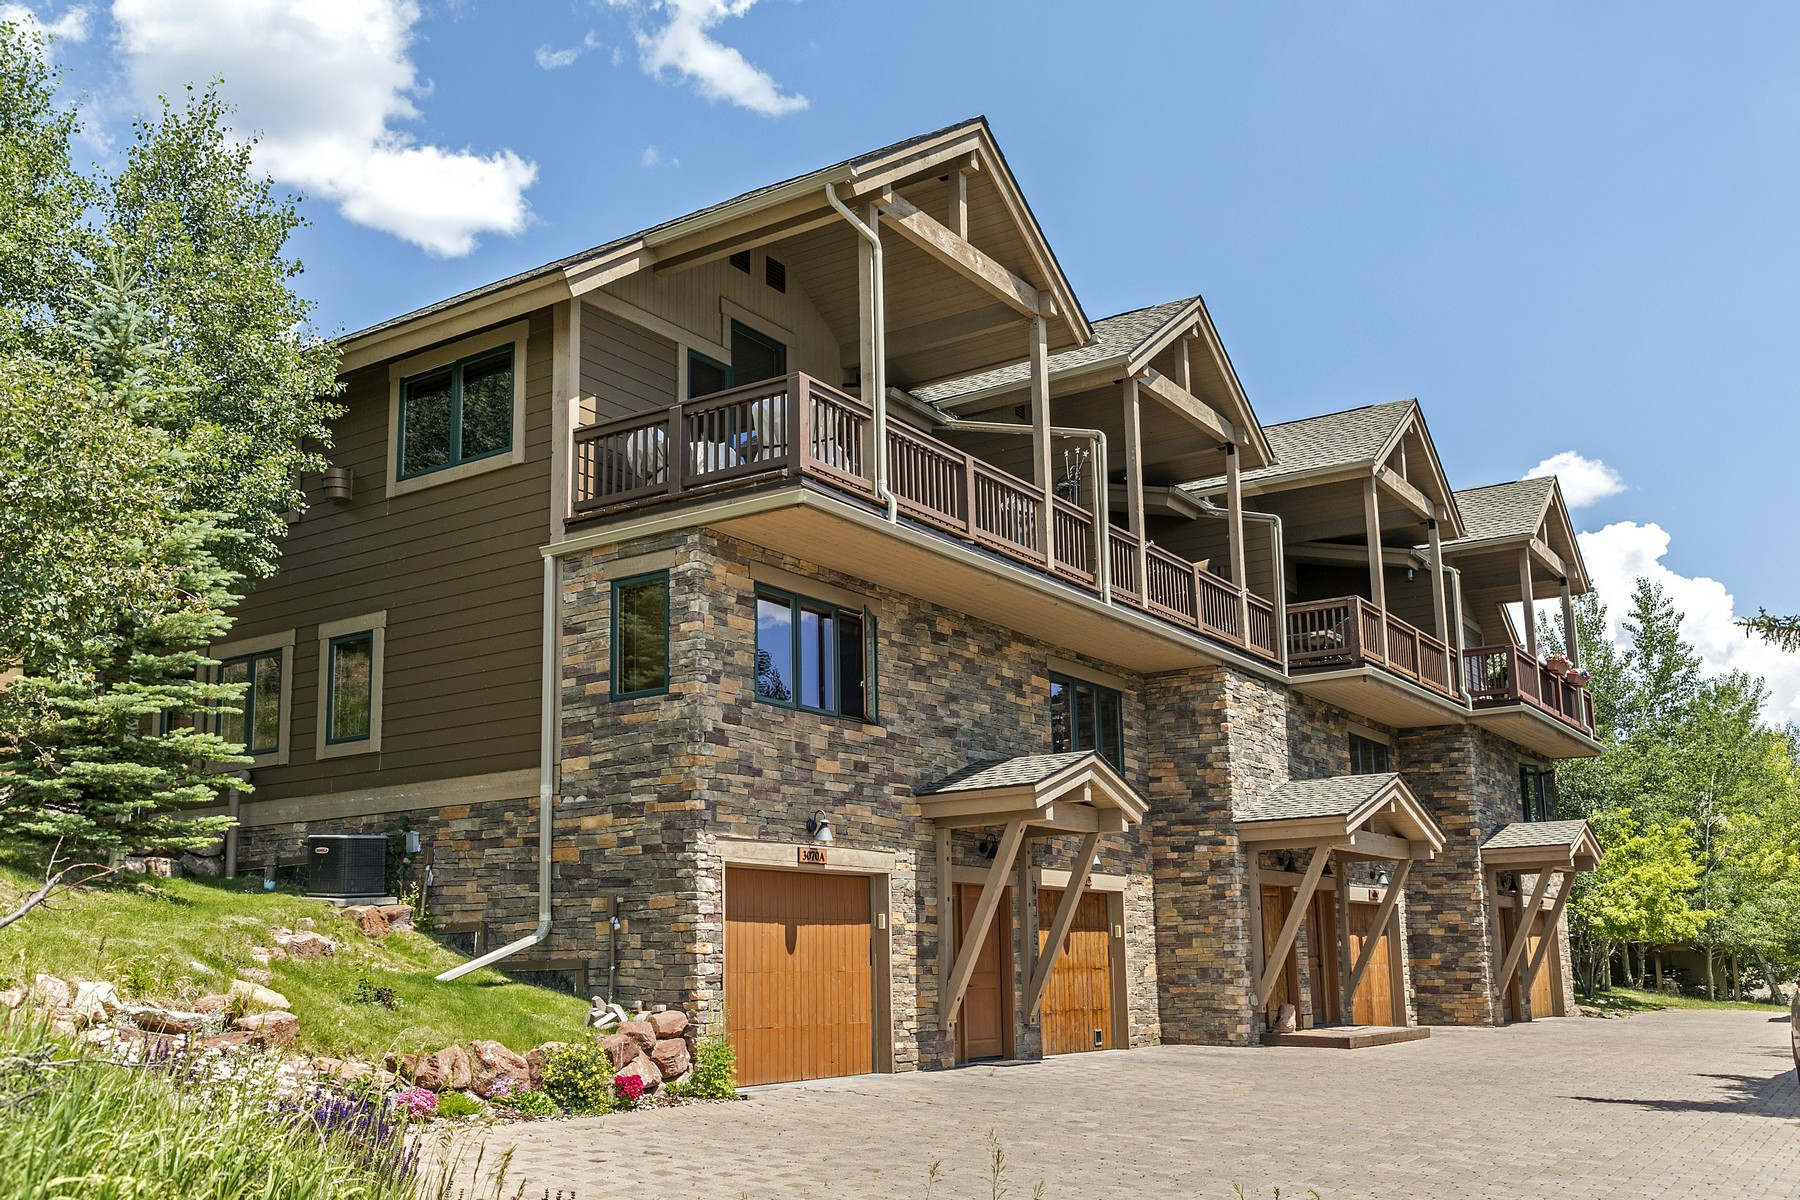 Property for Active at Mountain View Townhomes #B 3070 Wildridge Road #B Avon, Colorado 81620 United States